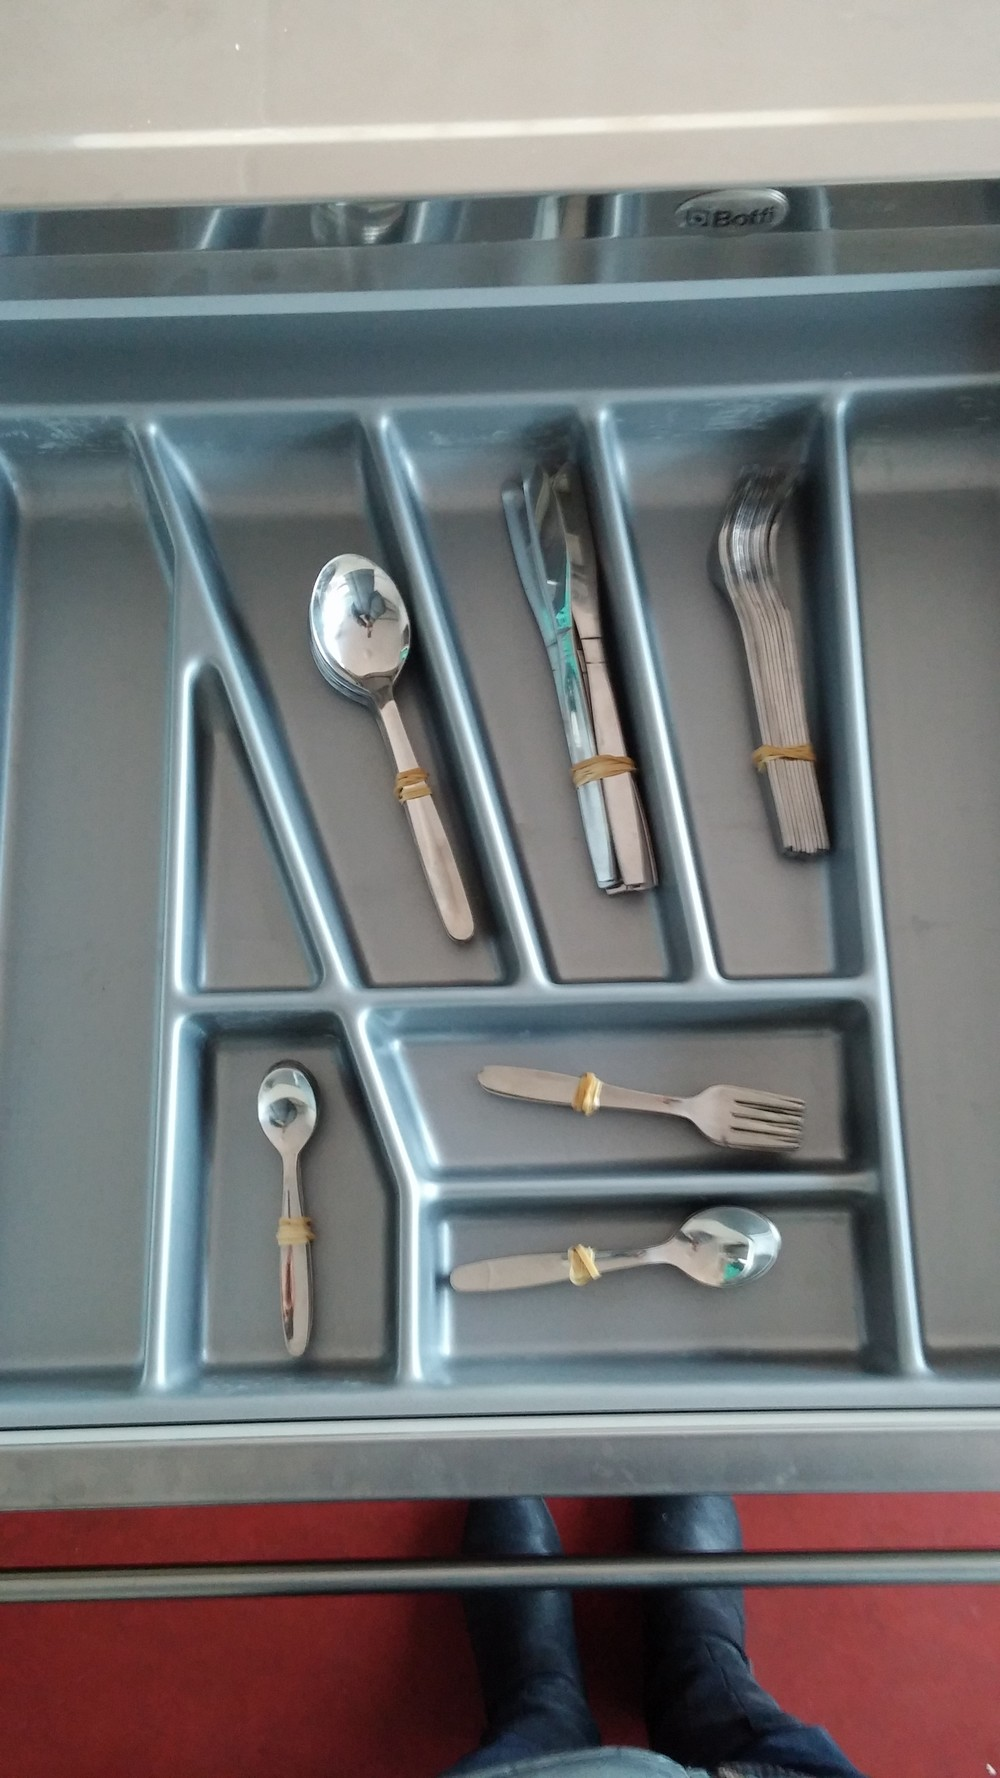 Because you never know when you'll need 3 different sizes of spoons